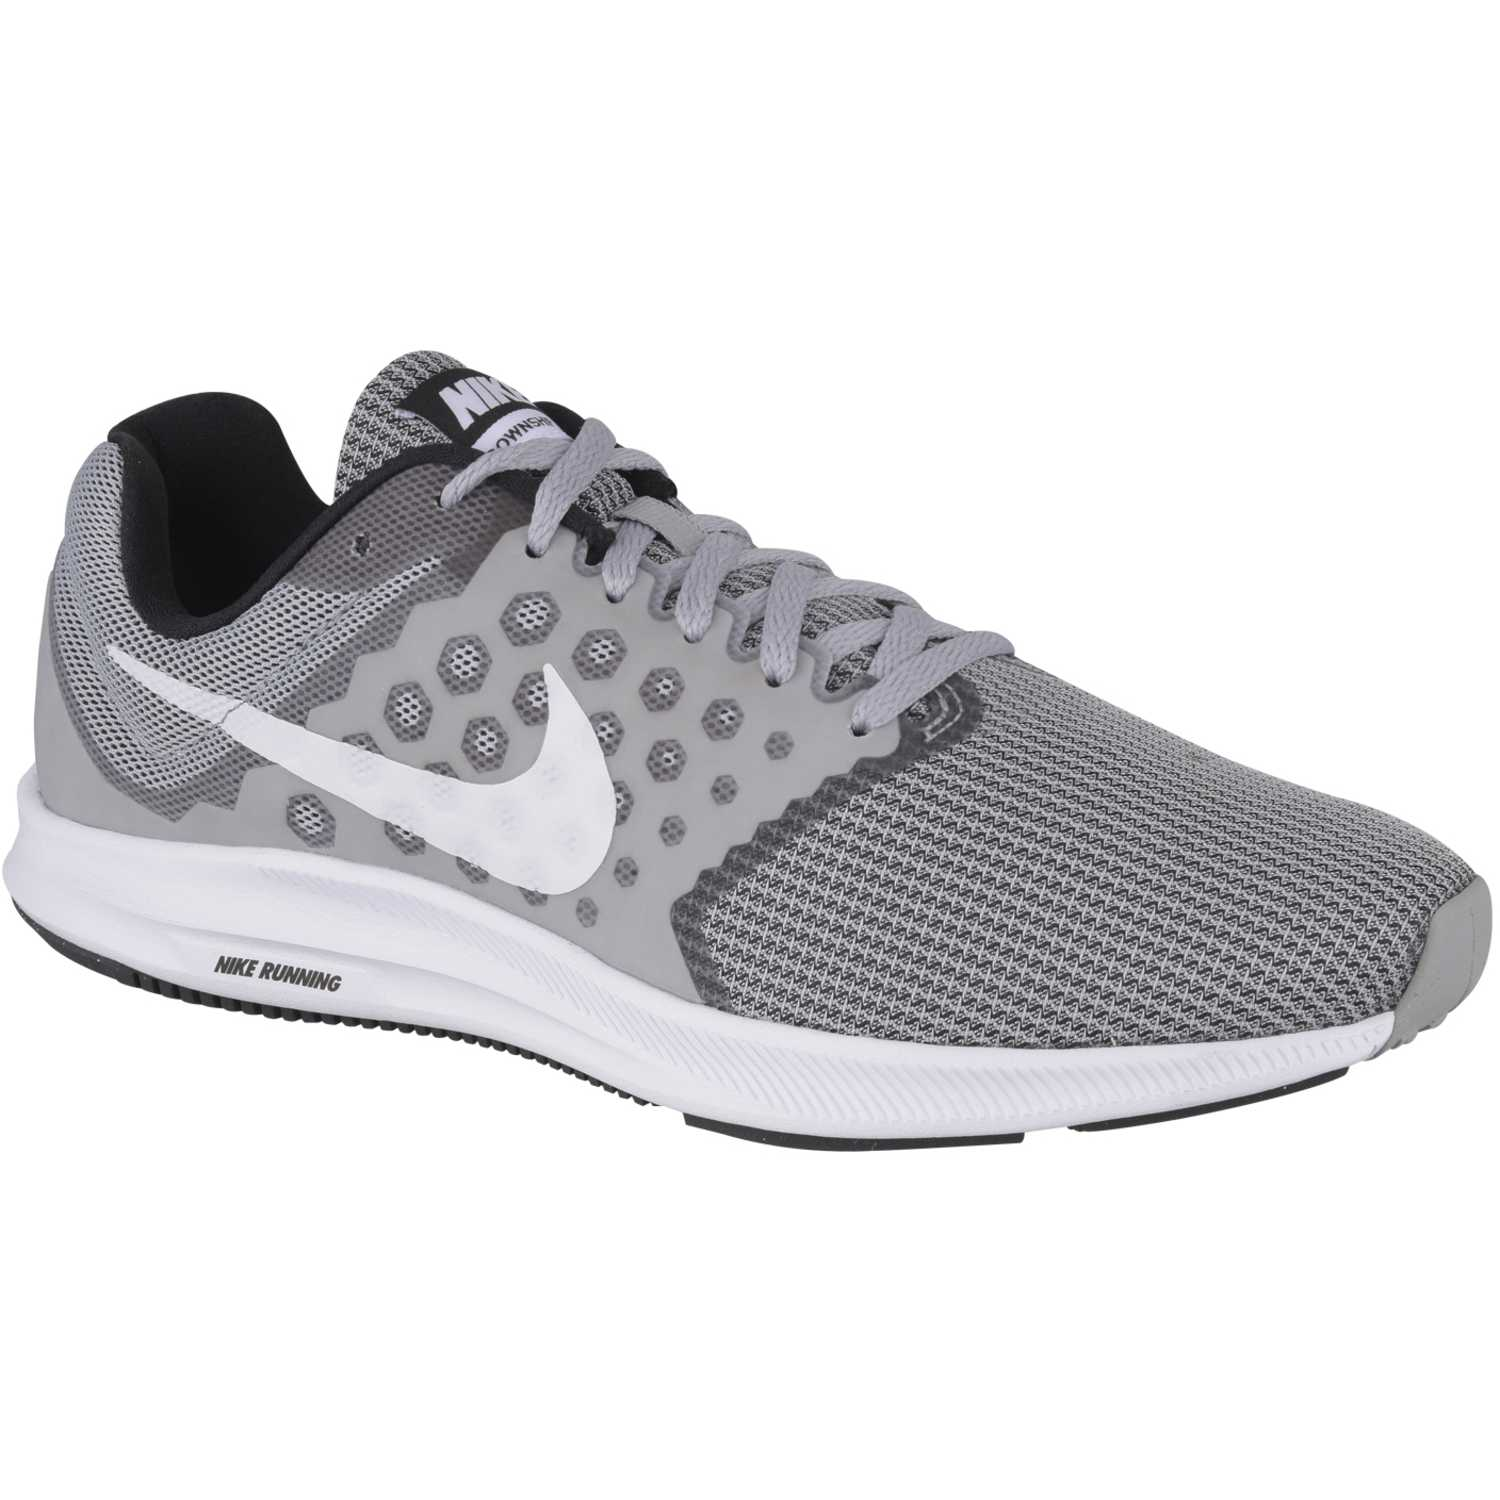 Tenis Nike Hombre Nike Downshifter 7 Azul y Blanco – Geared Media